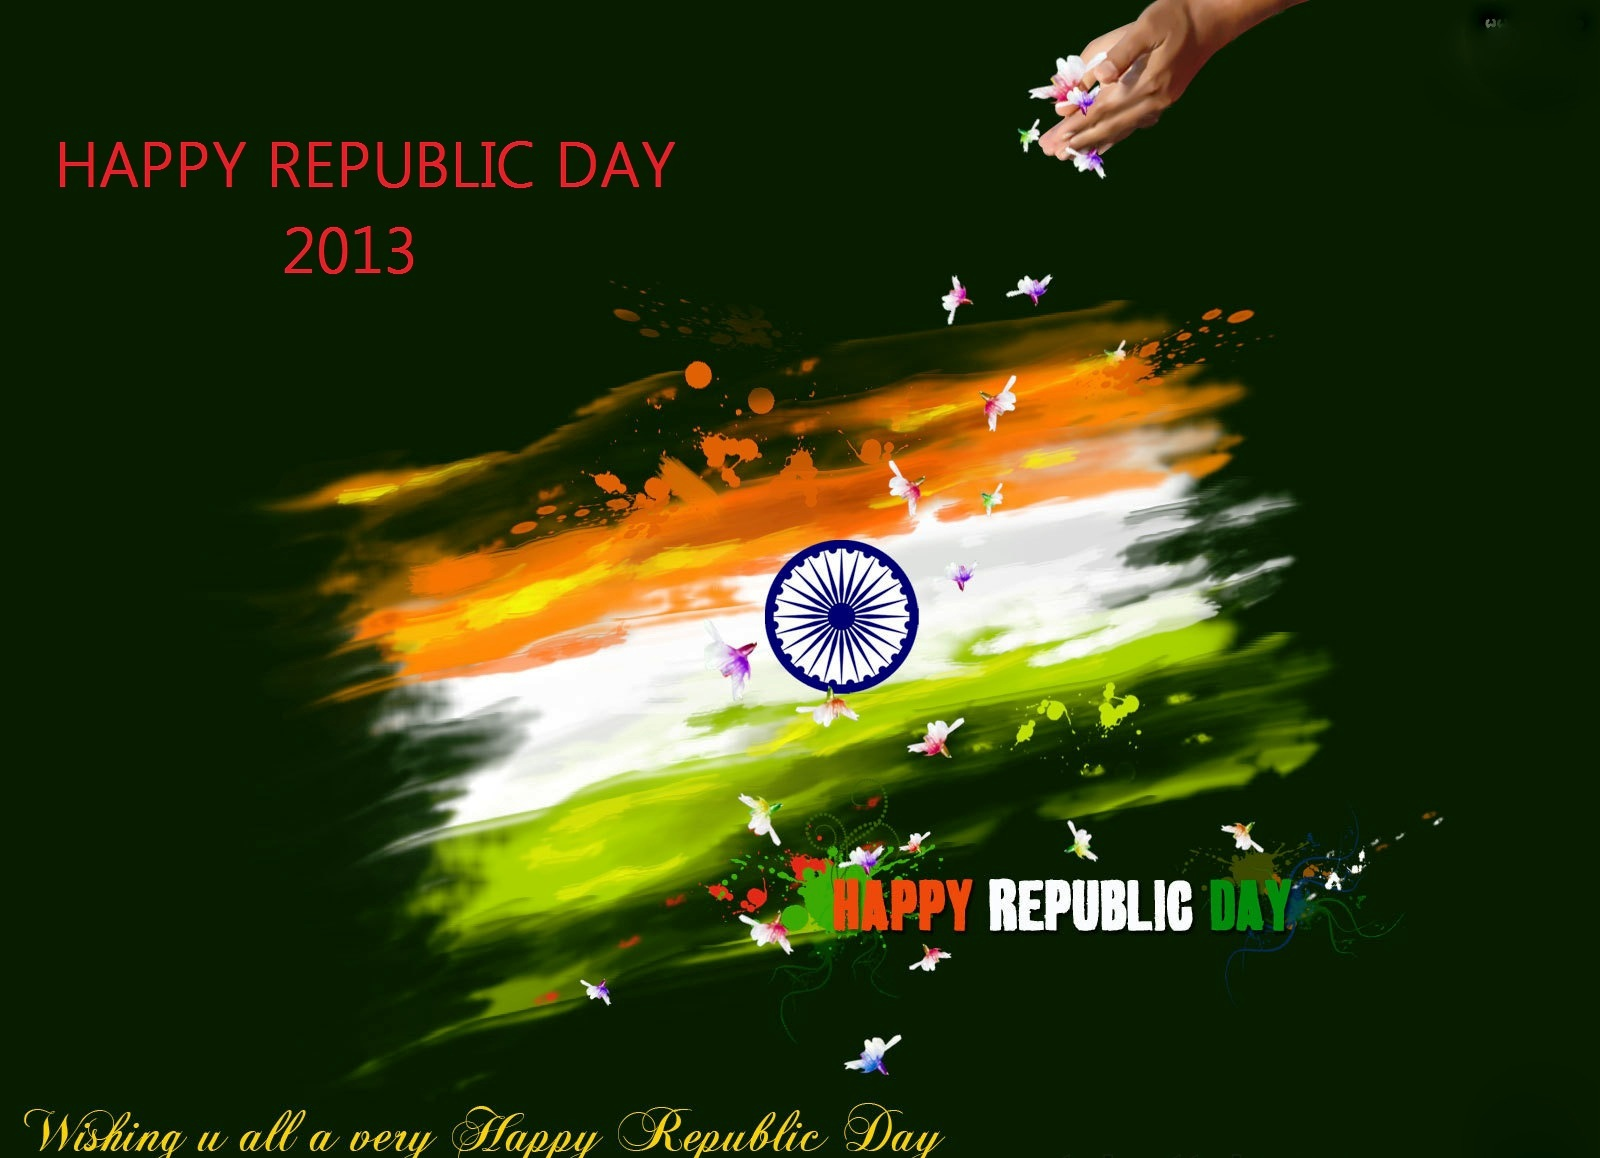 http://4.bp.blogspot.com/-GxNiyxgW8x8/UQLVEsXZZZI/AAAAAAAAObs/qW-cWabHffE/s1600/republic-day-in-india.jpg